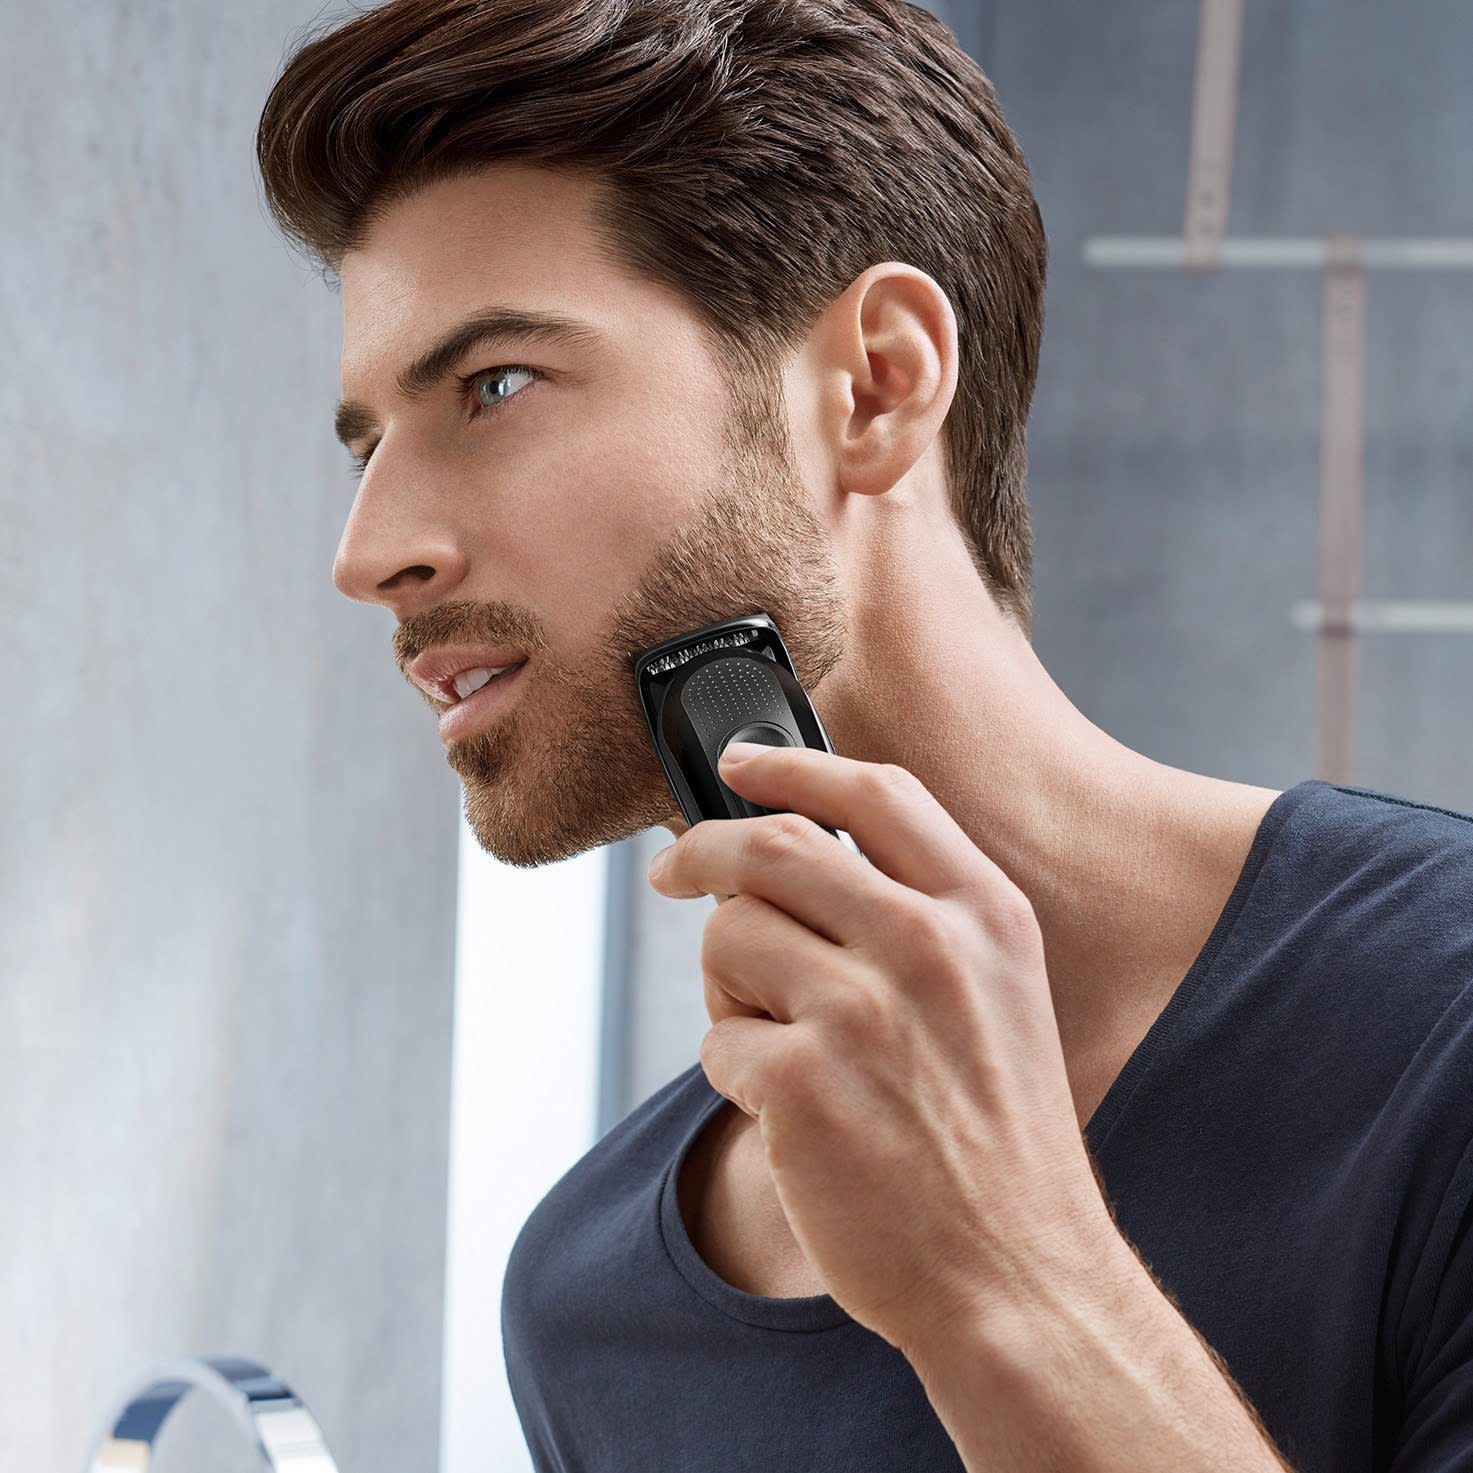 Braun multi grooming kit MGK3020 in use